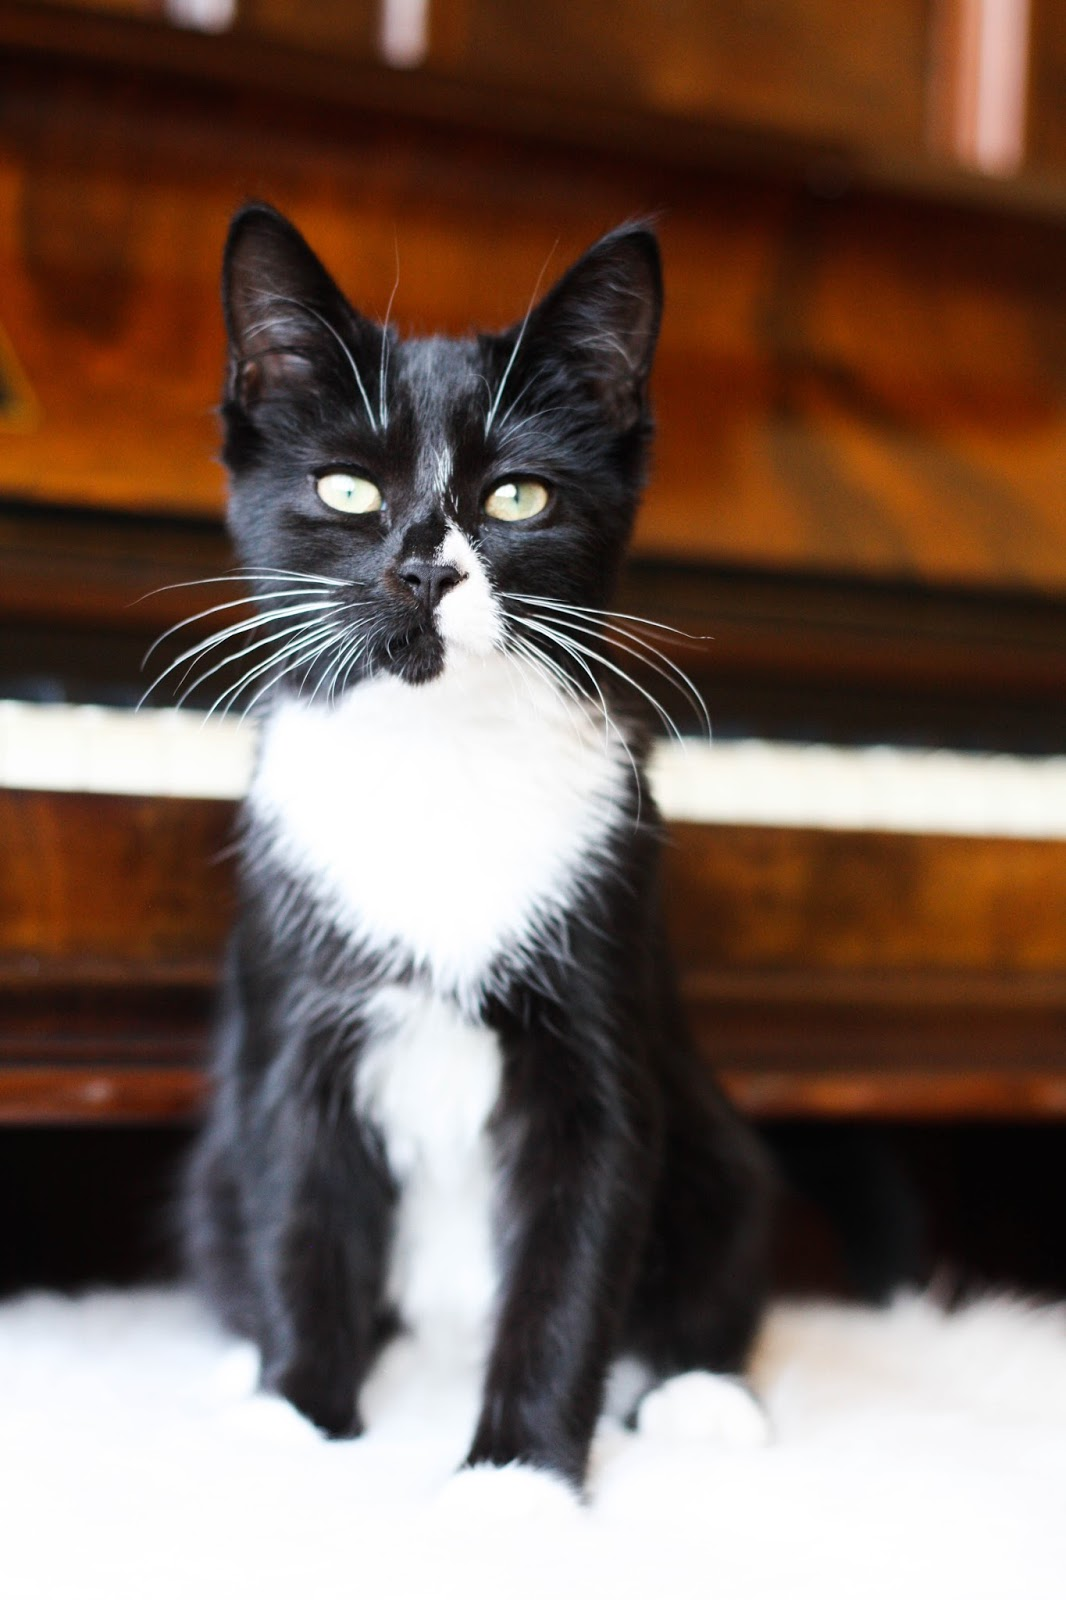 5 things you MUST do when you get a new kitten